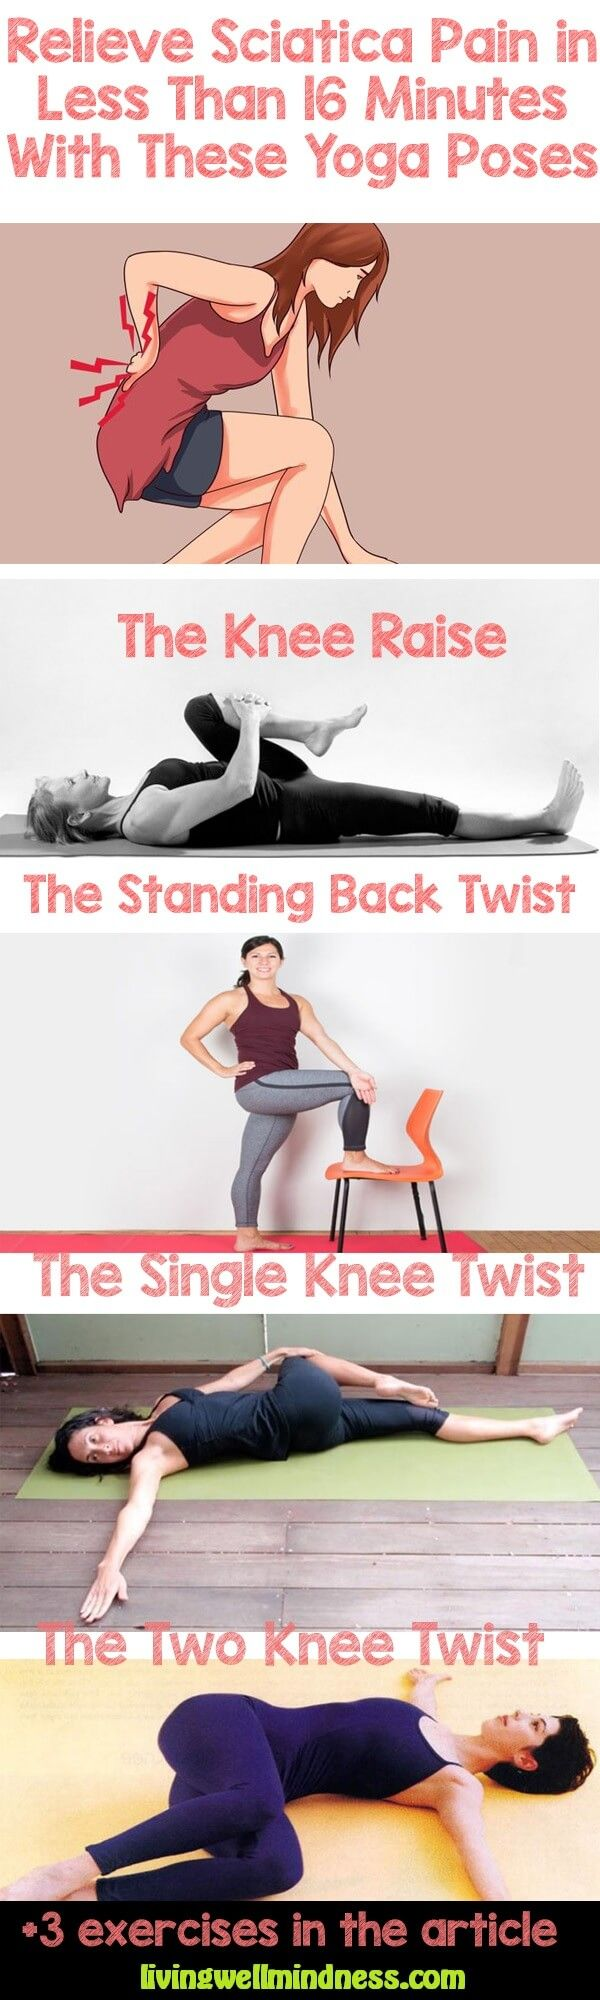 There are some positions originating from yoga that can stretch your lower back and prevent sciatica pain.